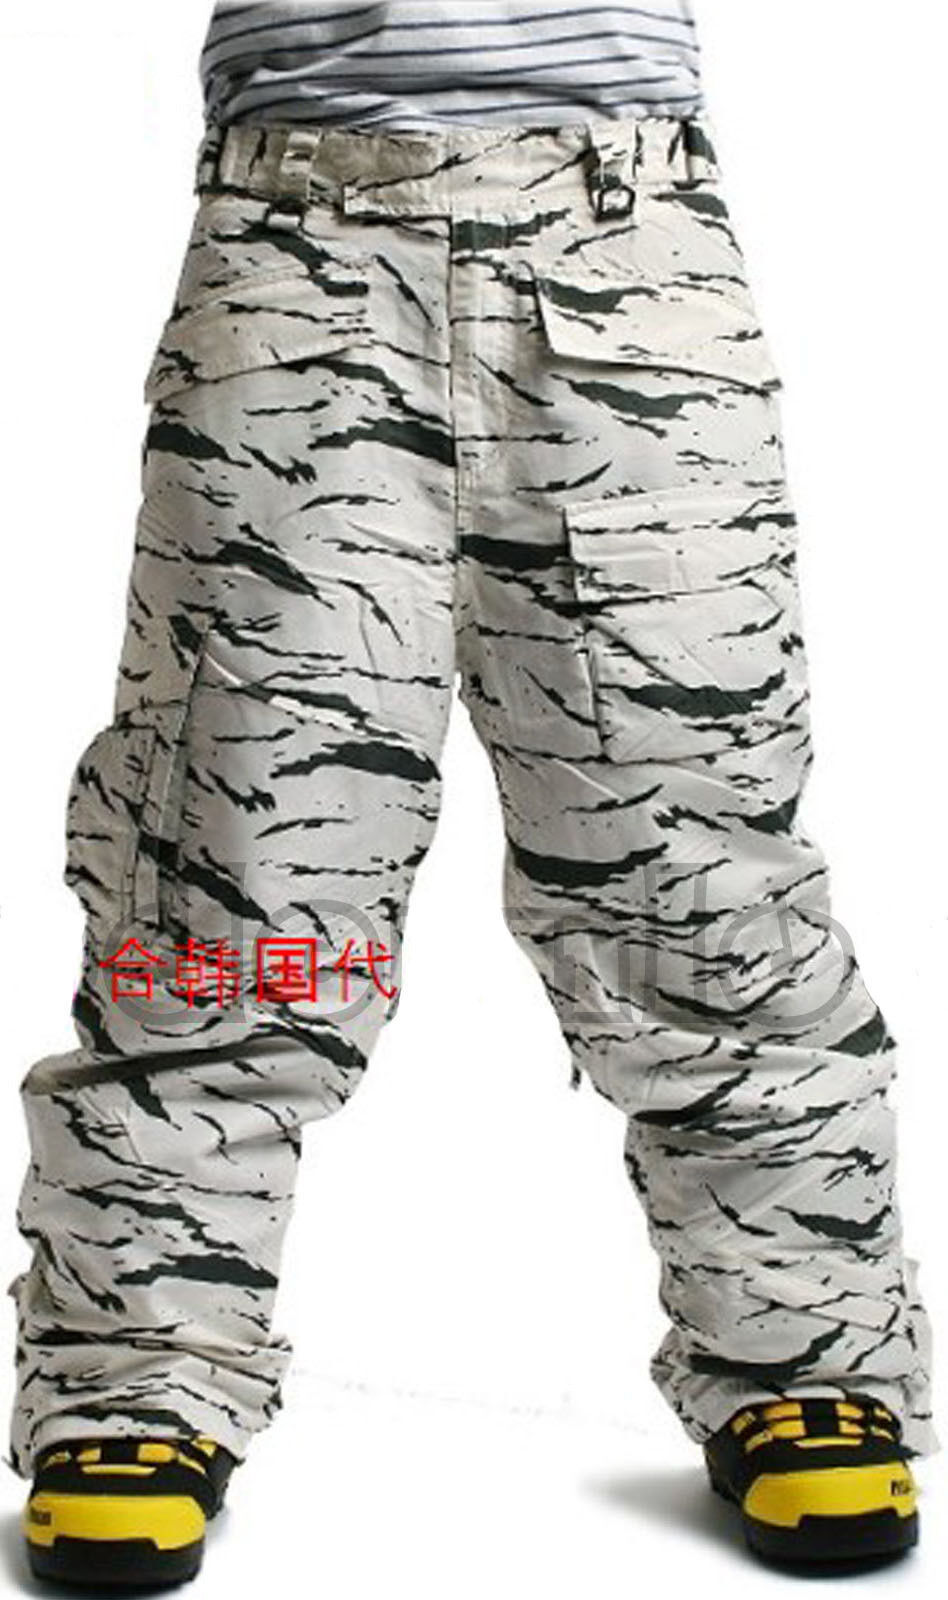 New Southplay Mens Winter Premium White  Camo Military Ski-Snowboard Pants  new listing